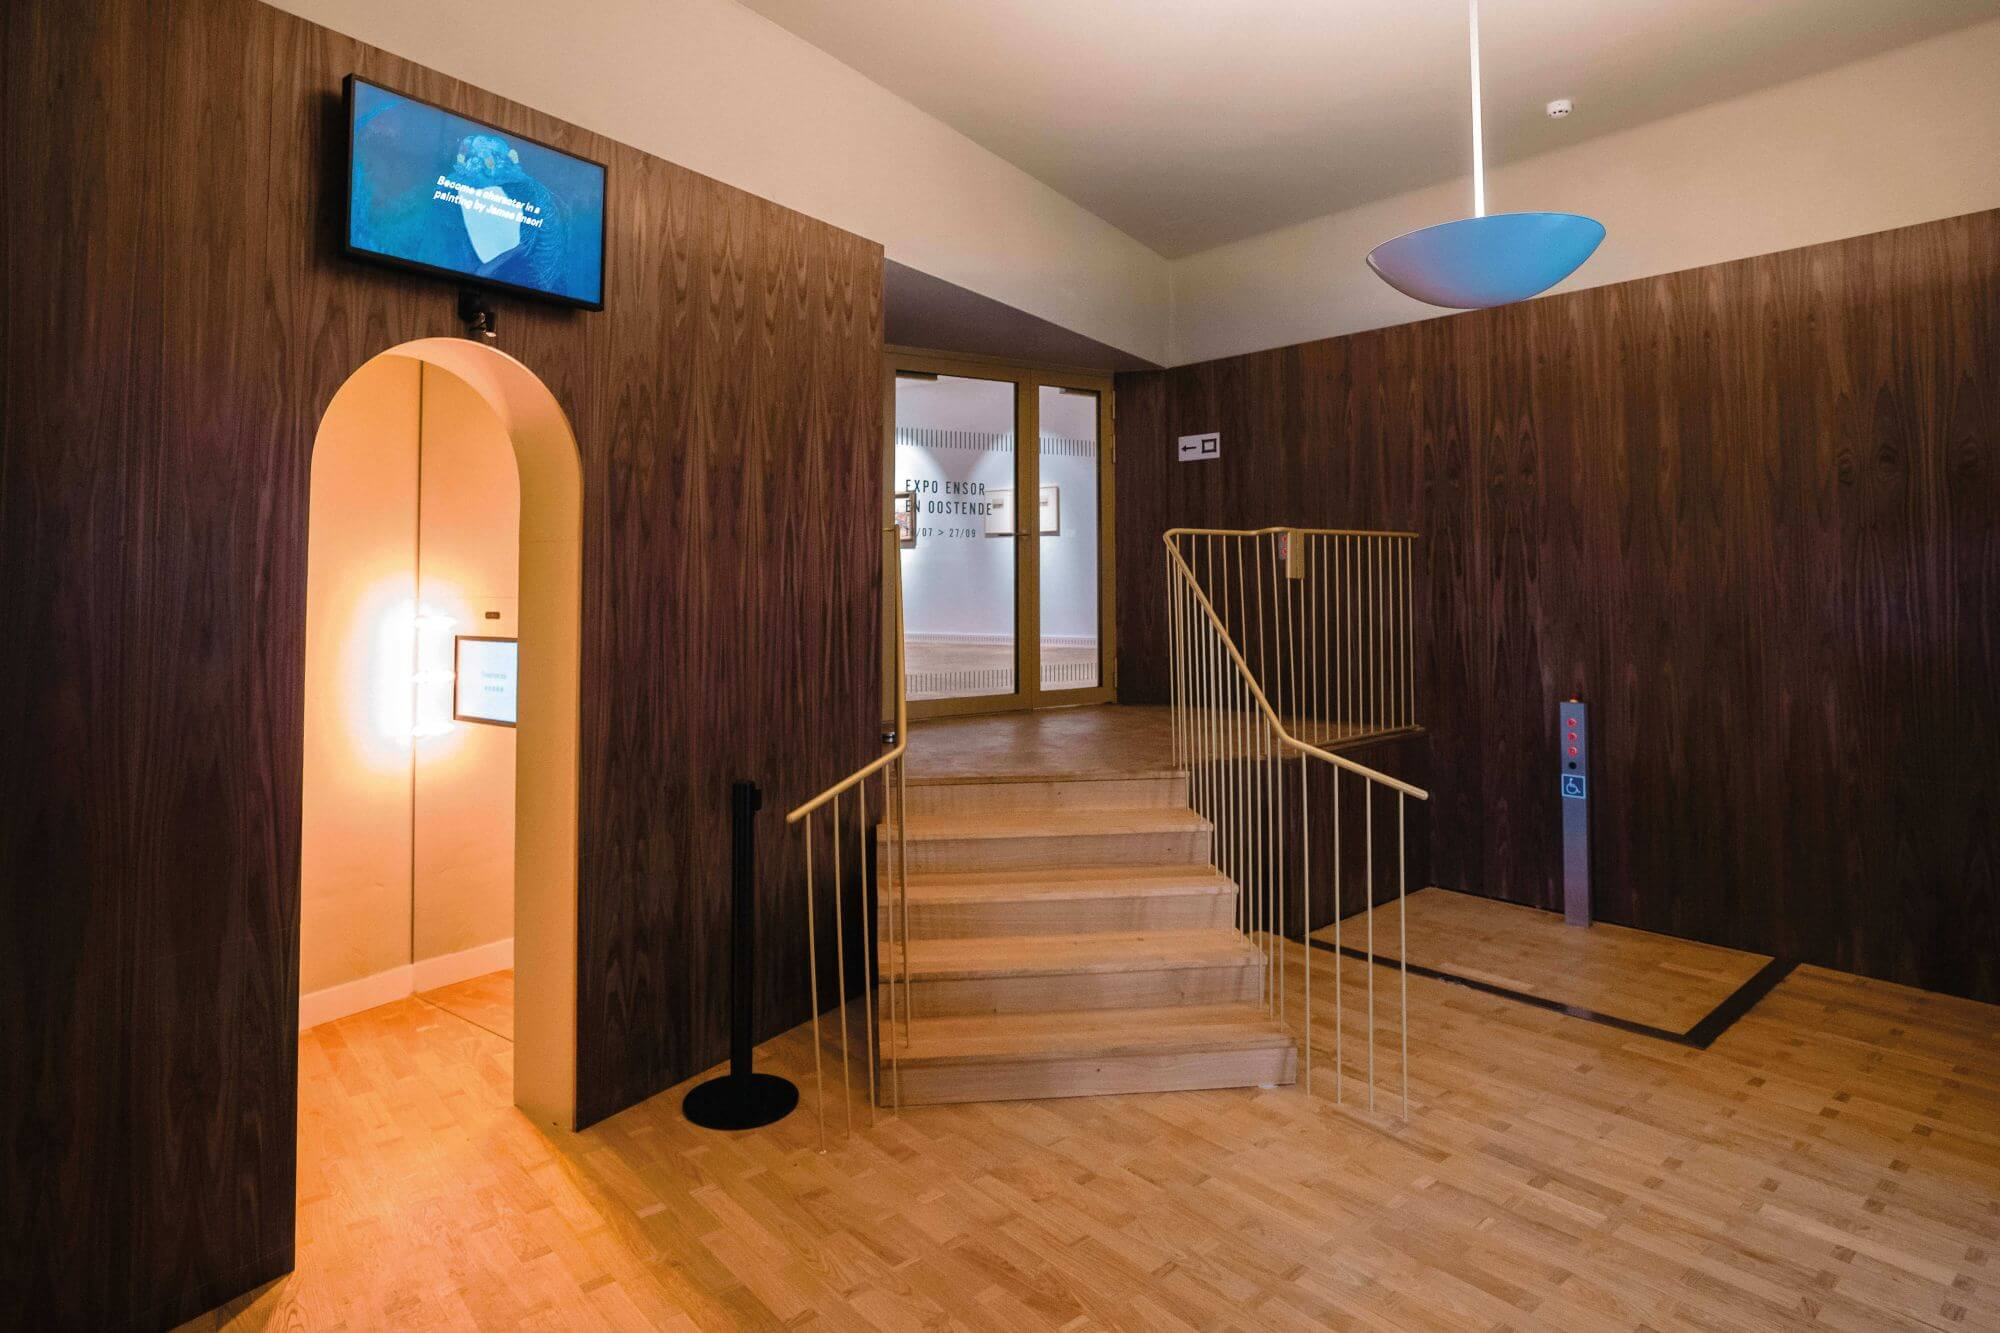 Museum in Belgium features art from the past and wood floors finished with Rubio Monocoat.